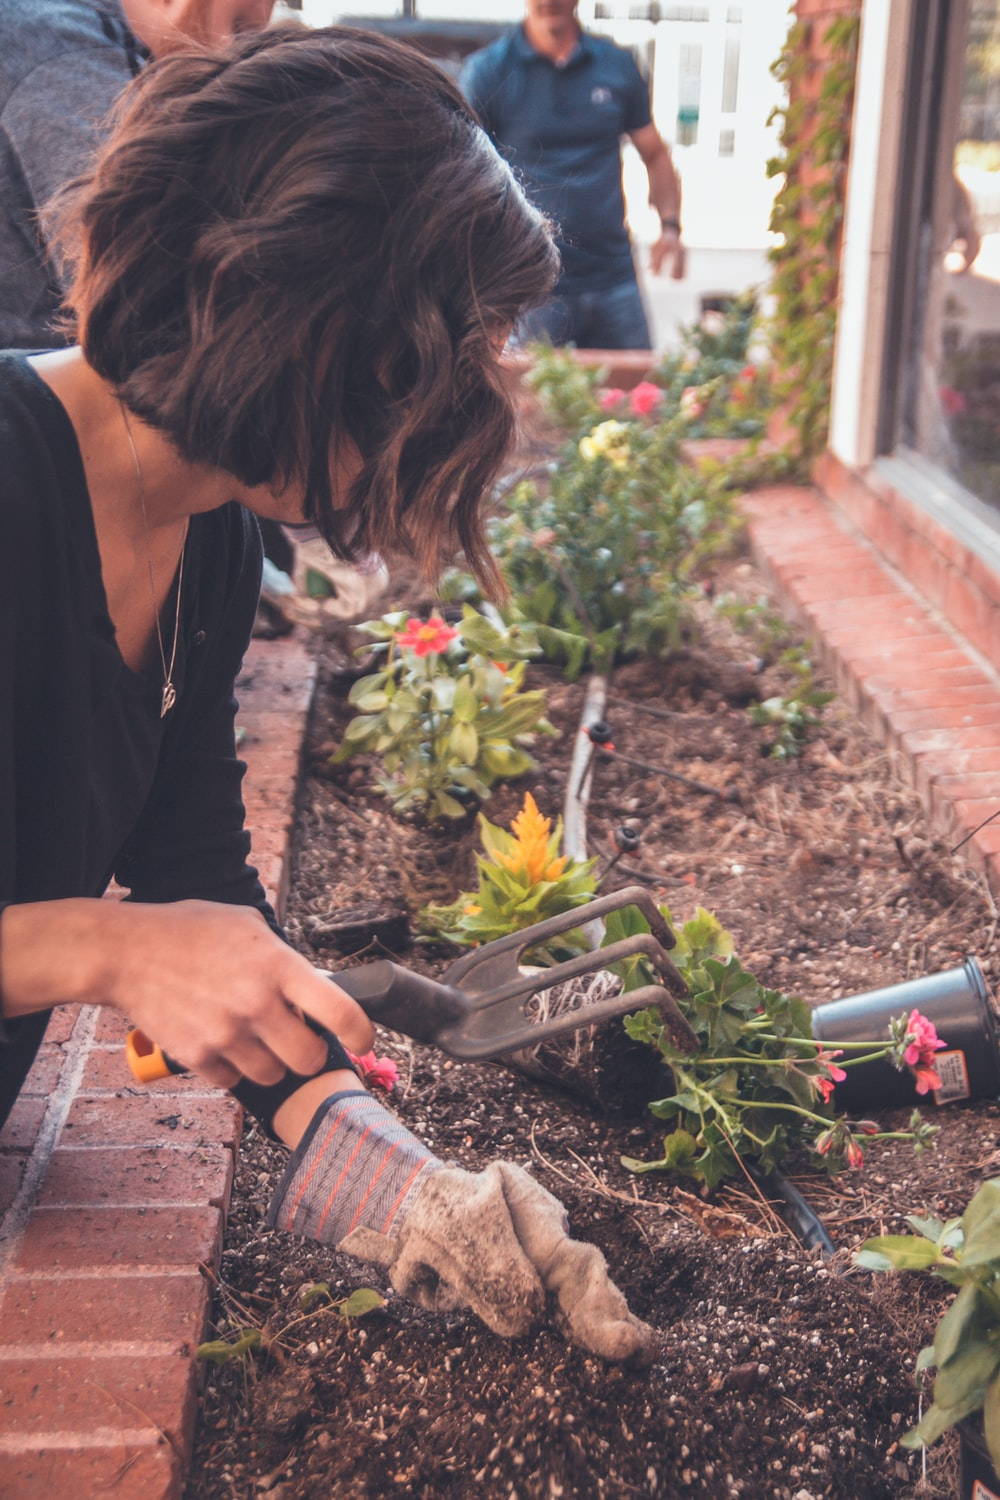 100+ Gardening Pictures | Download Free Images on Unsplash